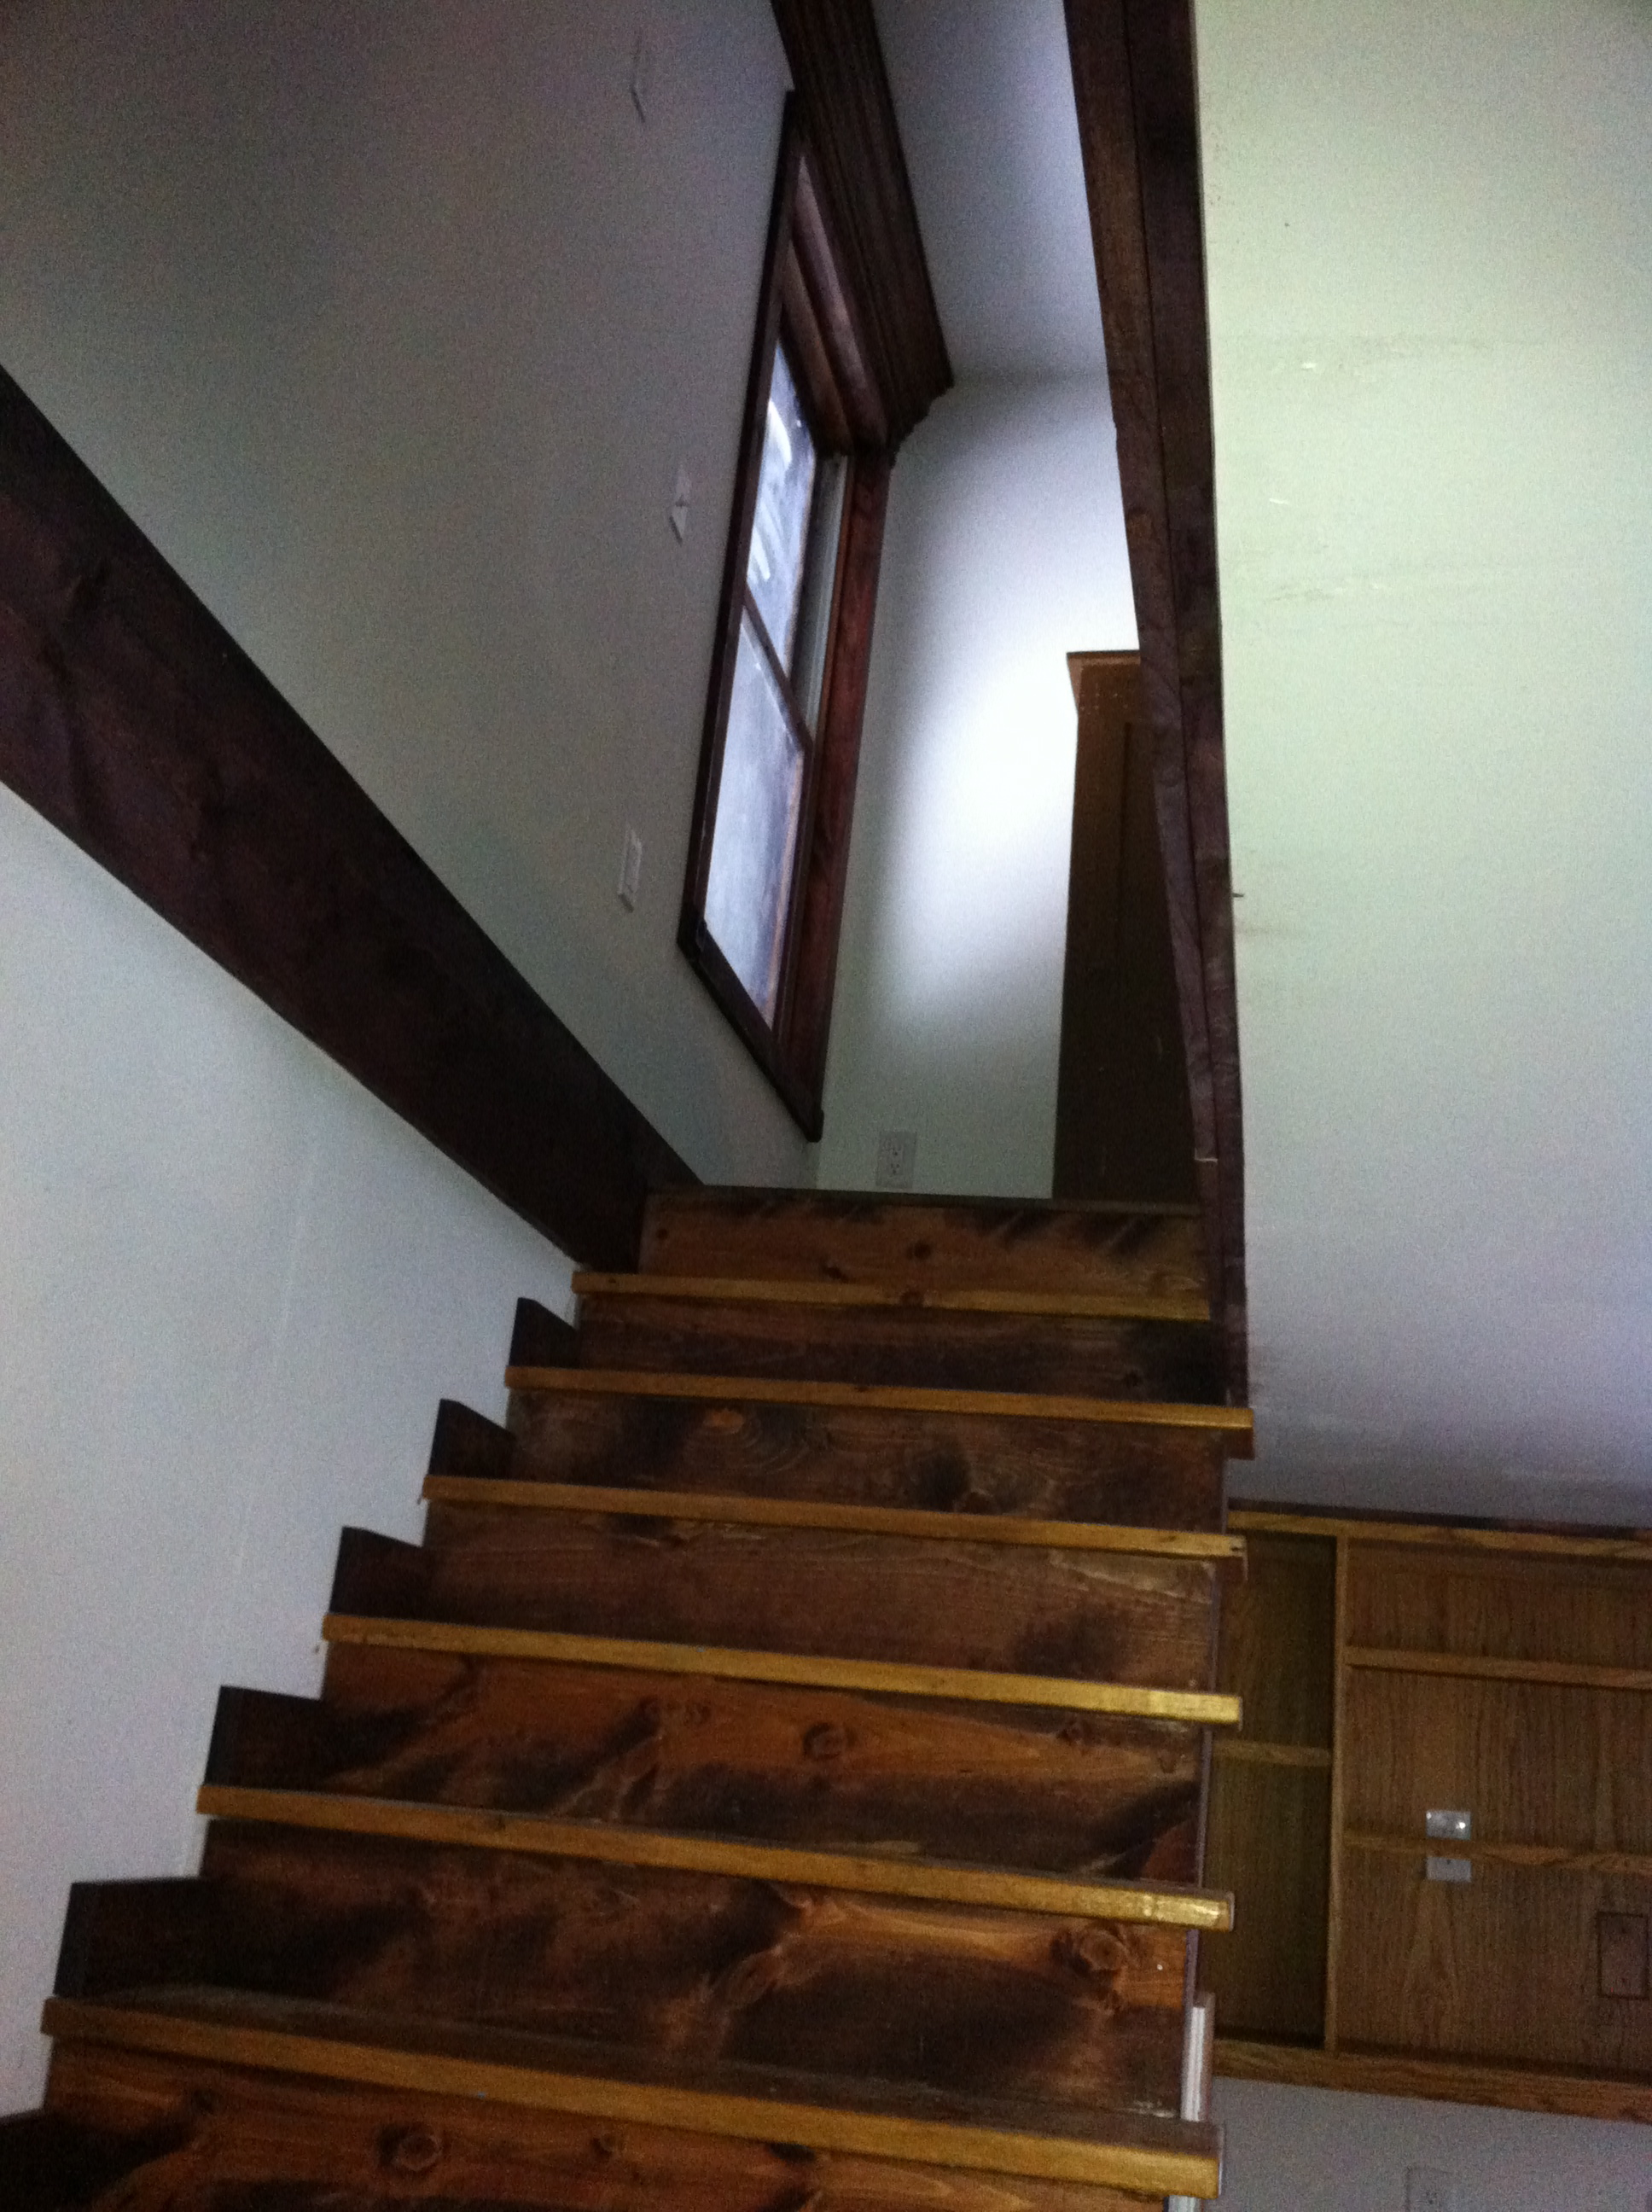 16 - A view of the upstairs with finished steps and stained woodwork